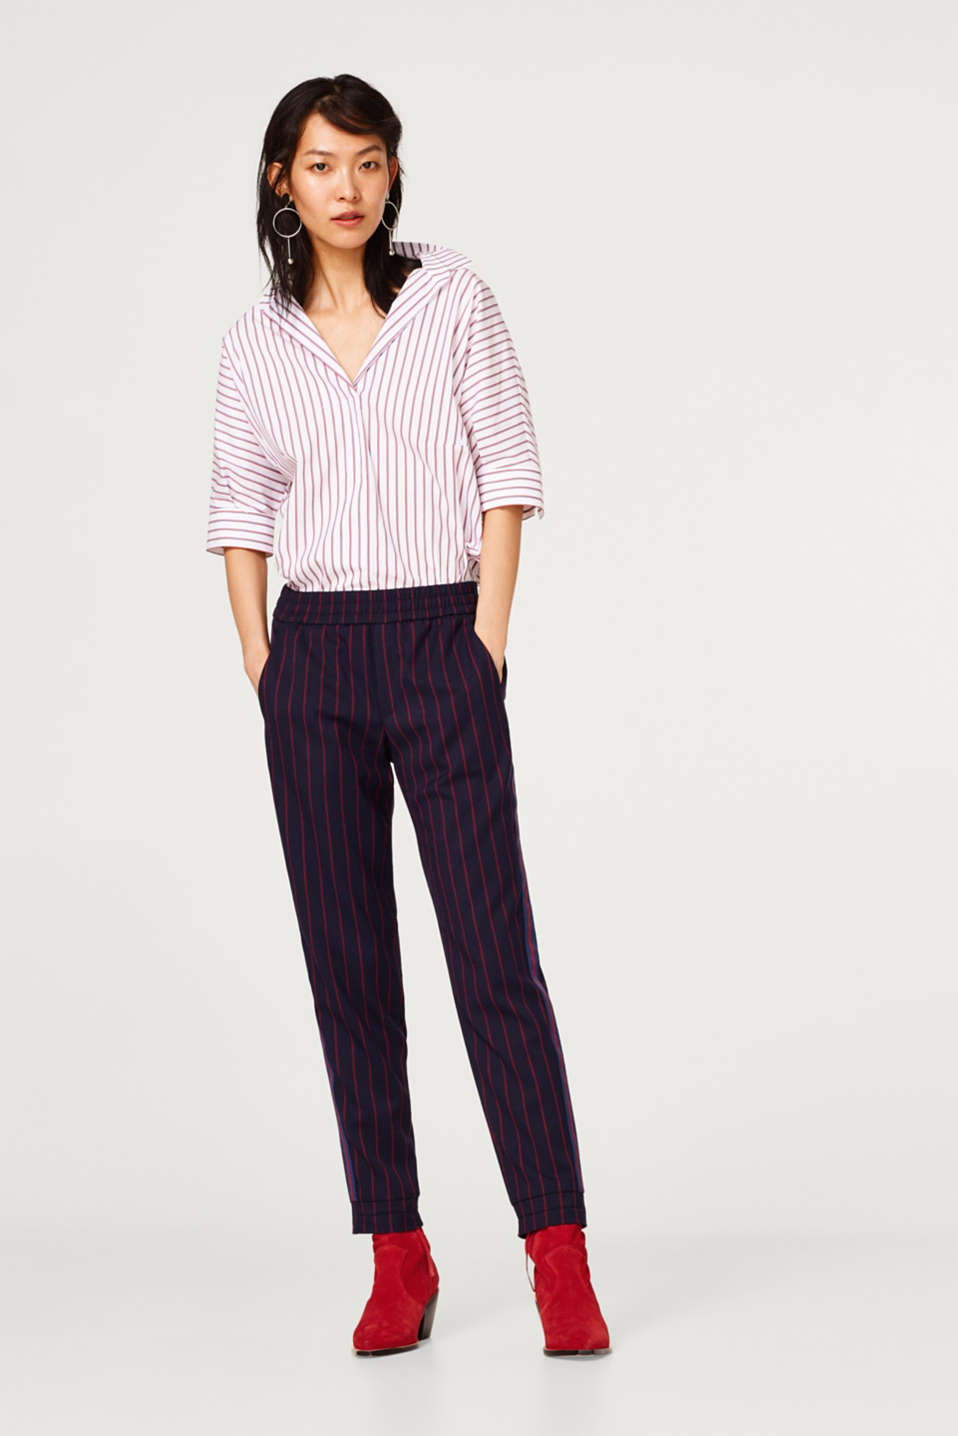 Stretch trousers in a tracksuit bottoms style with stripes